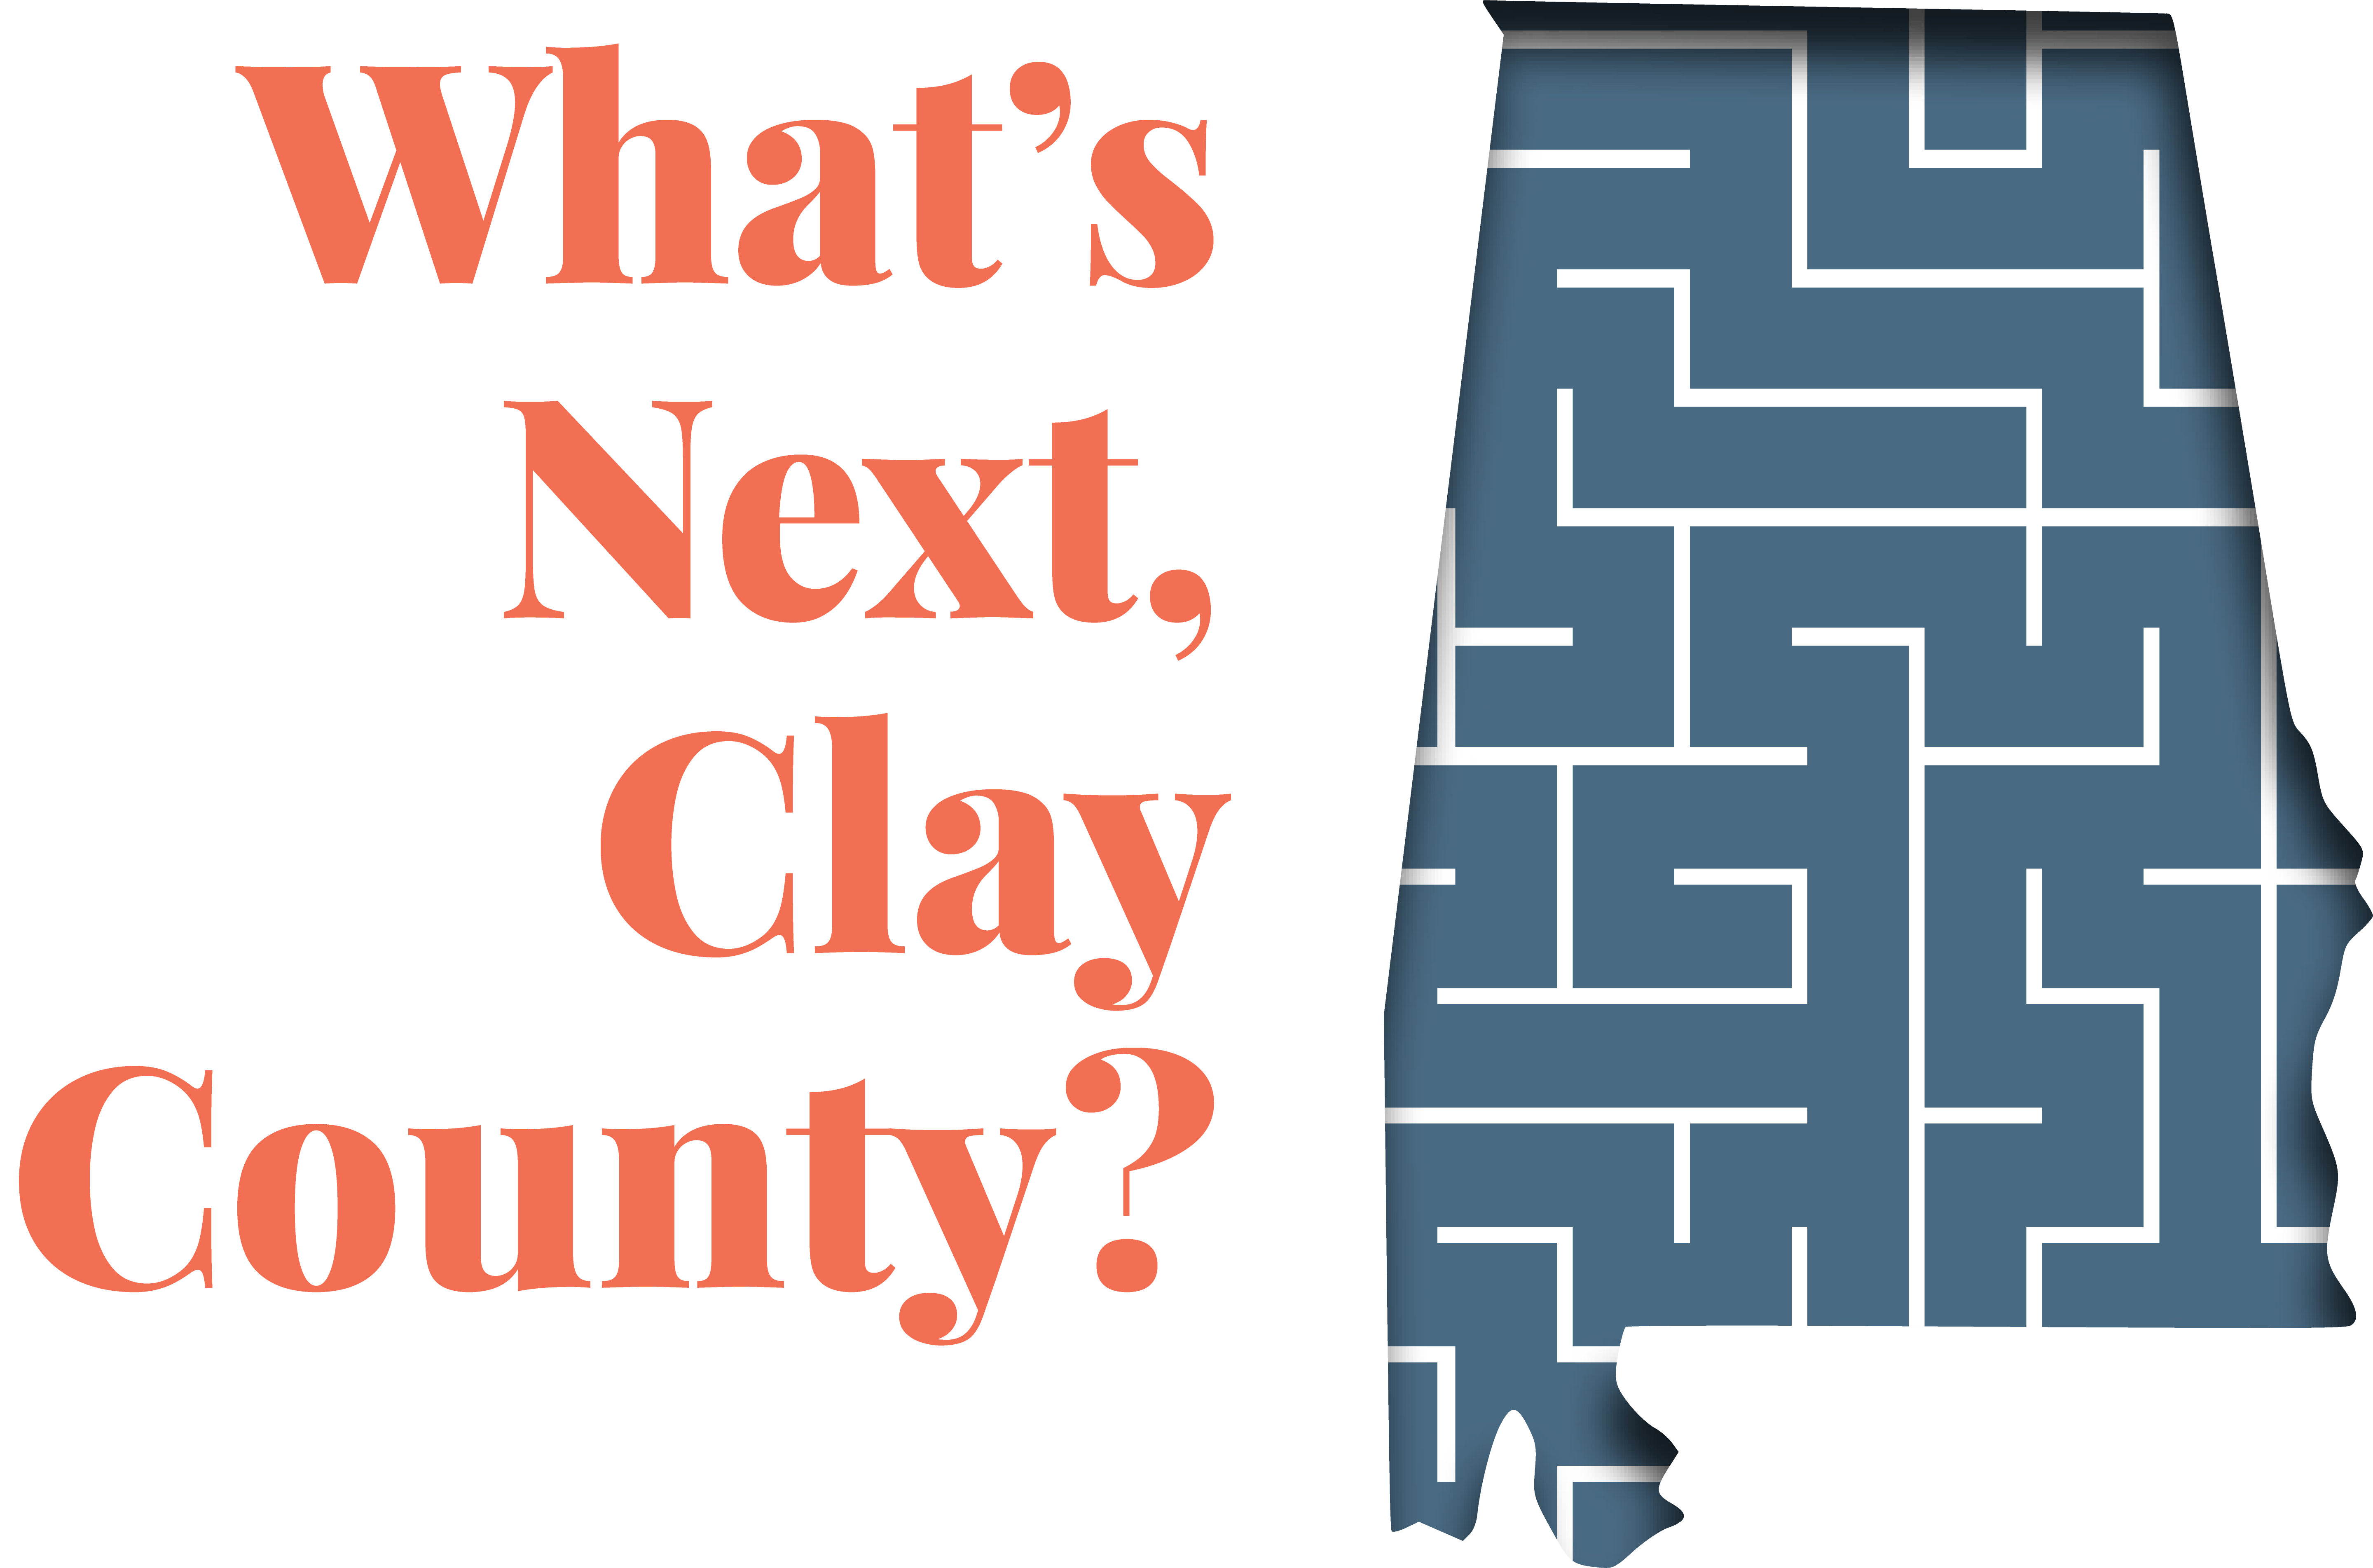 """an outline of Alabama with the words """"What's Next, Clay County?"""""""